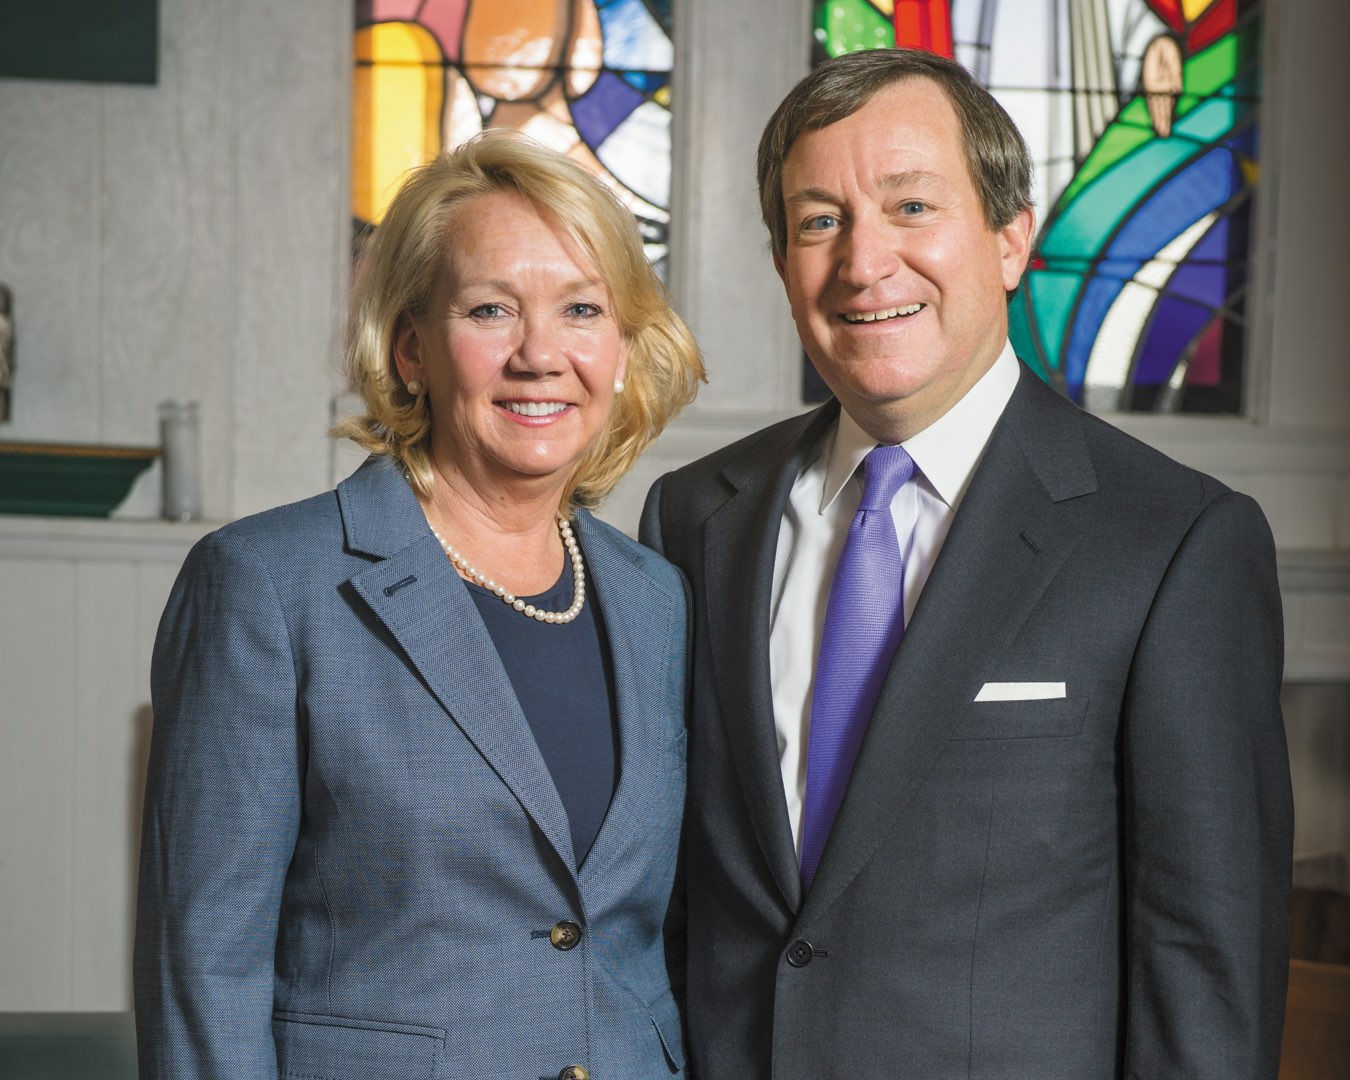 Polly and Terry O'Toole smiling in front of stained glass windows in the chapel